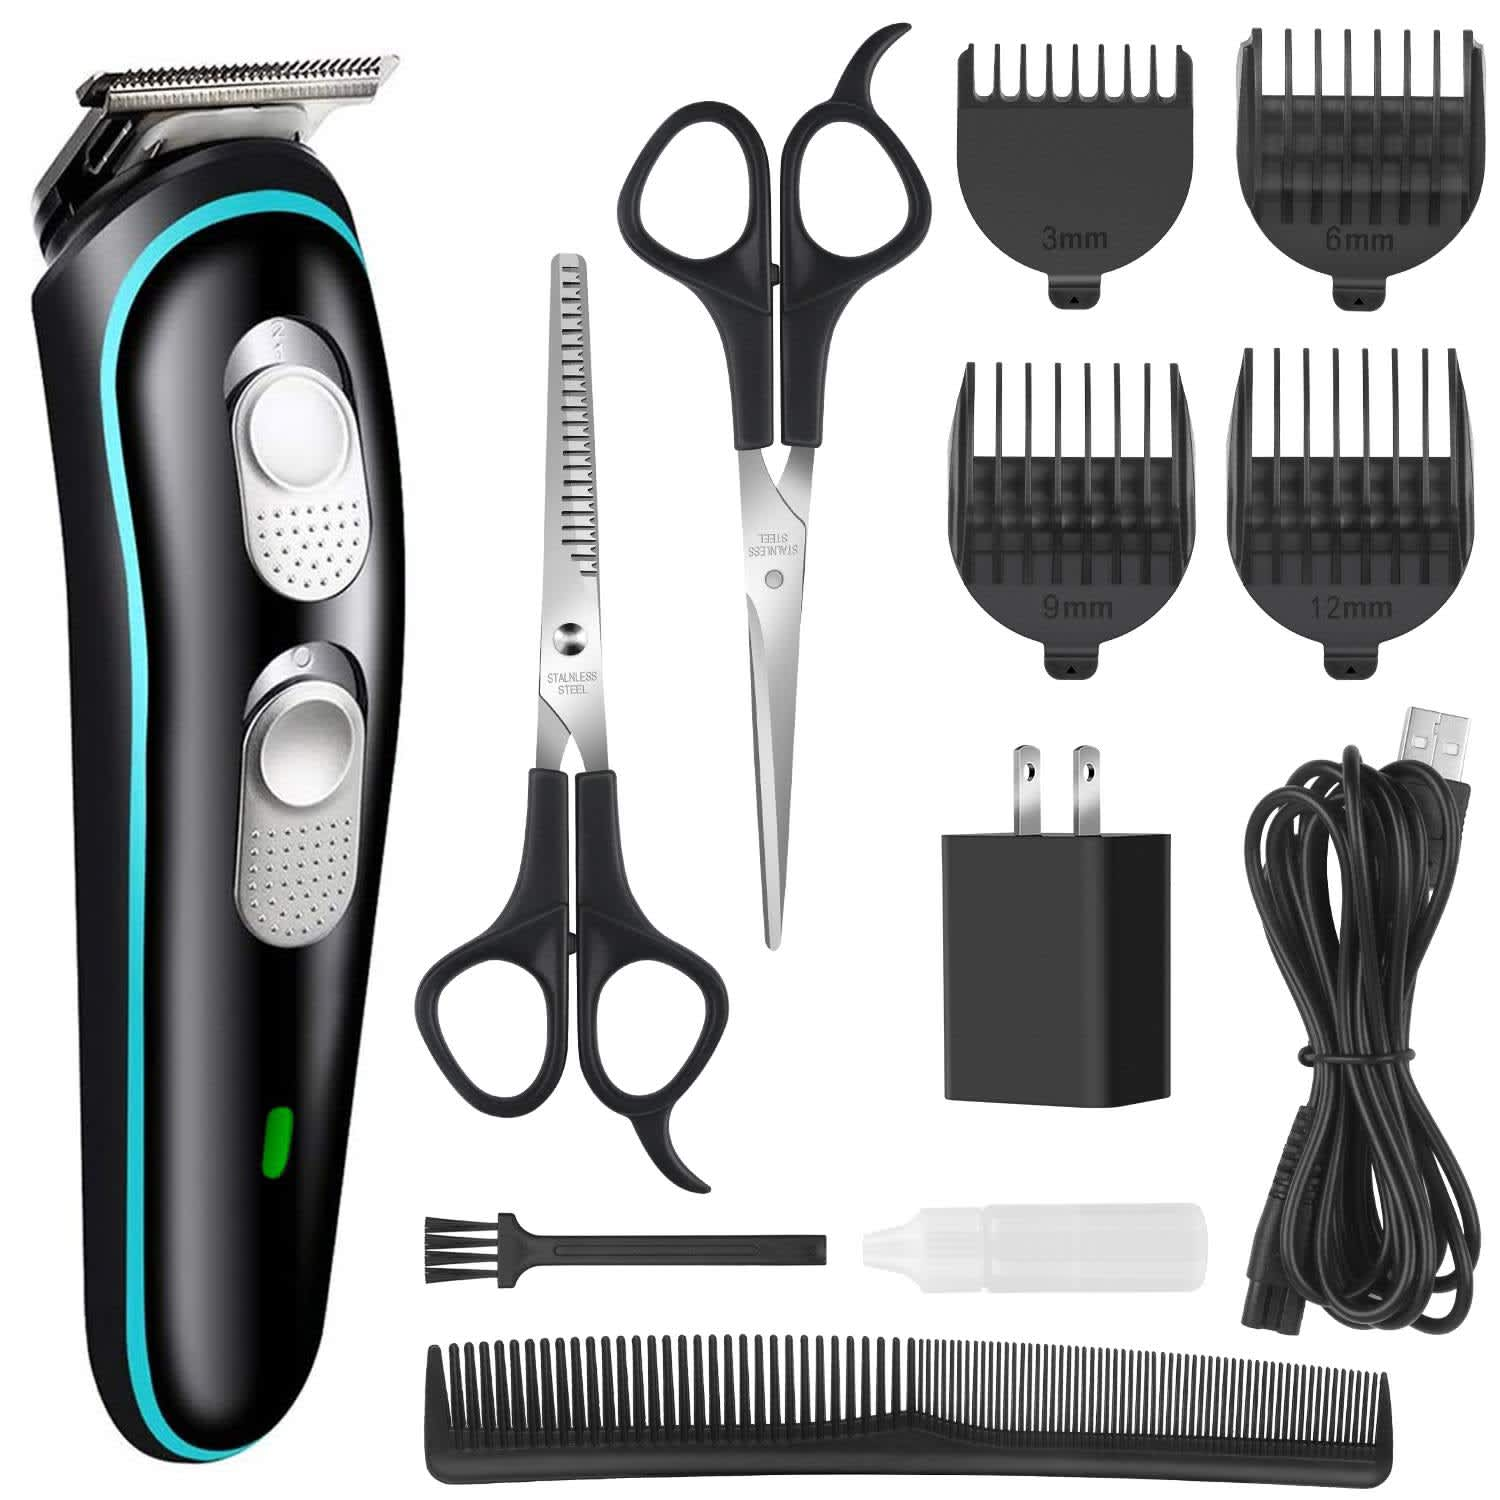 Lolost Men's Cordless Clippers